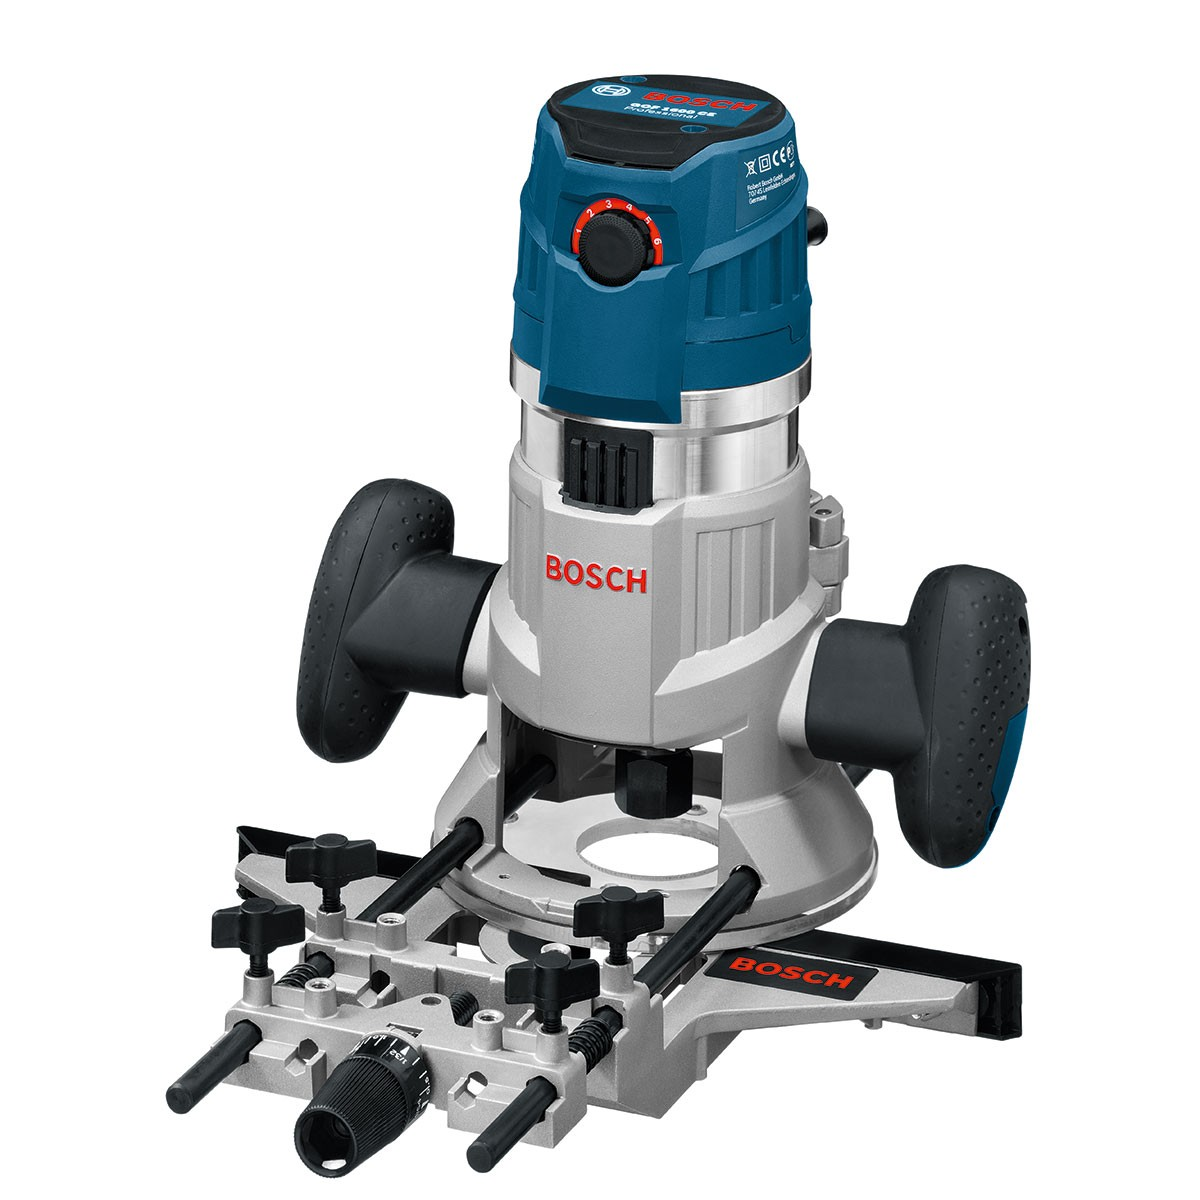 """Bosch GMF 1600 CE Professional Multifunction 1/4"""" + 1/2"""" Router"""